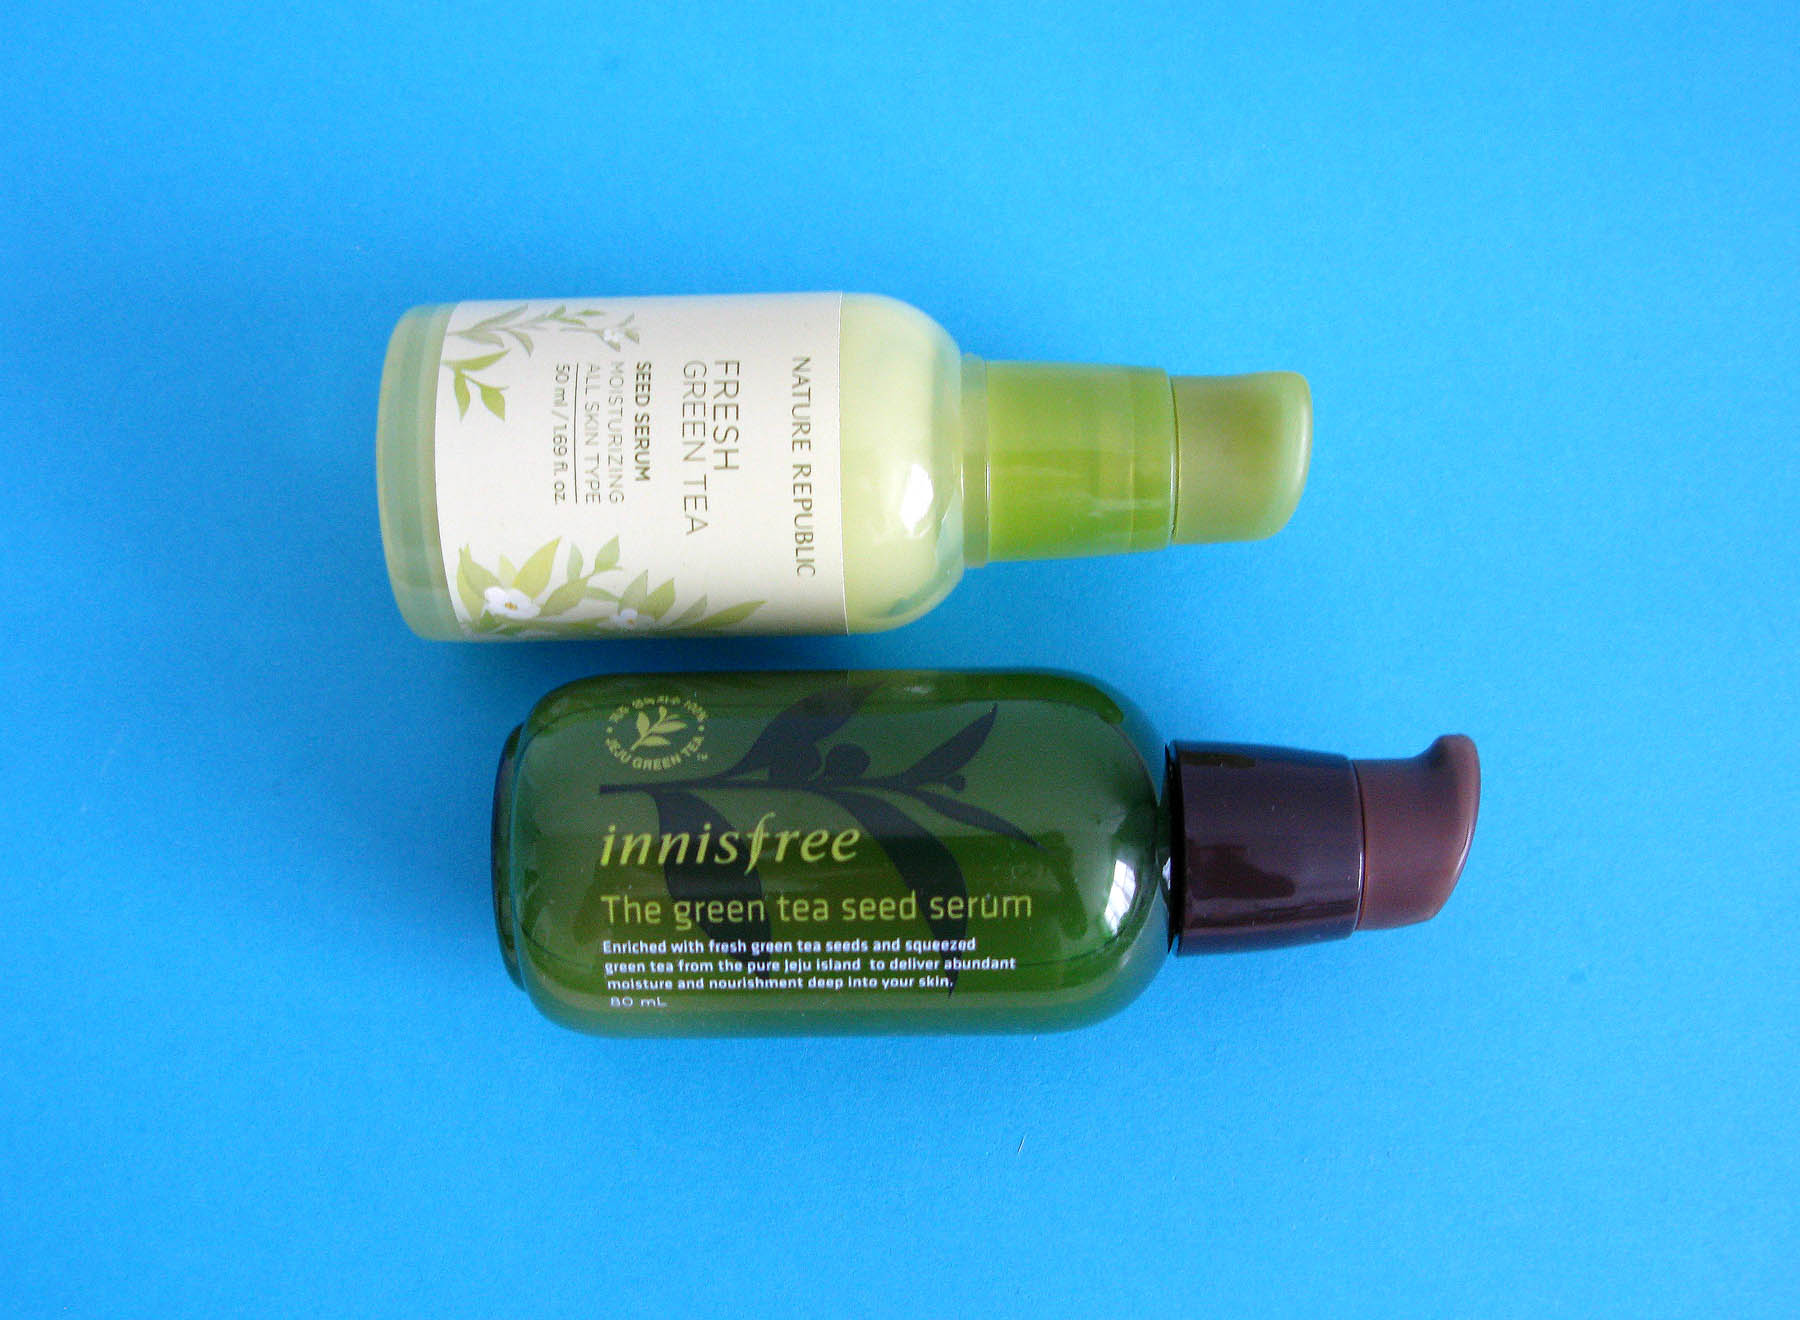 Nature Republic Fresh Green Tea Seed Serum and Innisfree The Green Tea Seed Serum